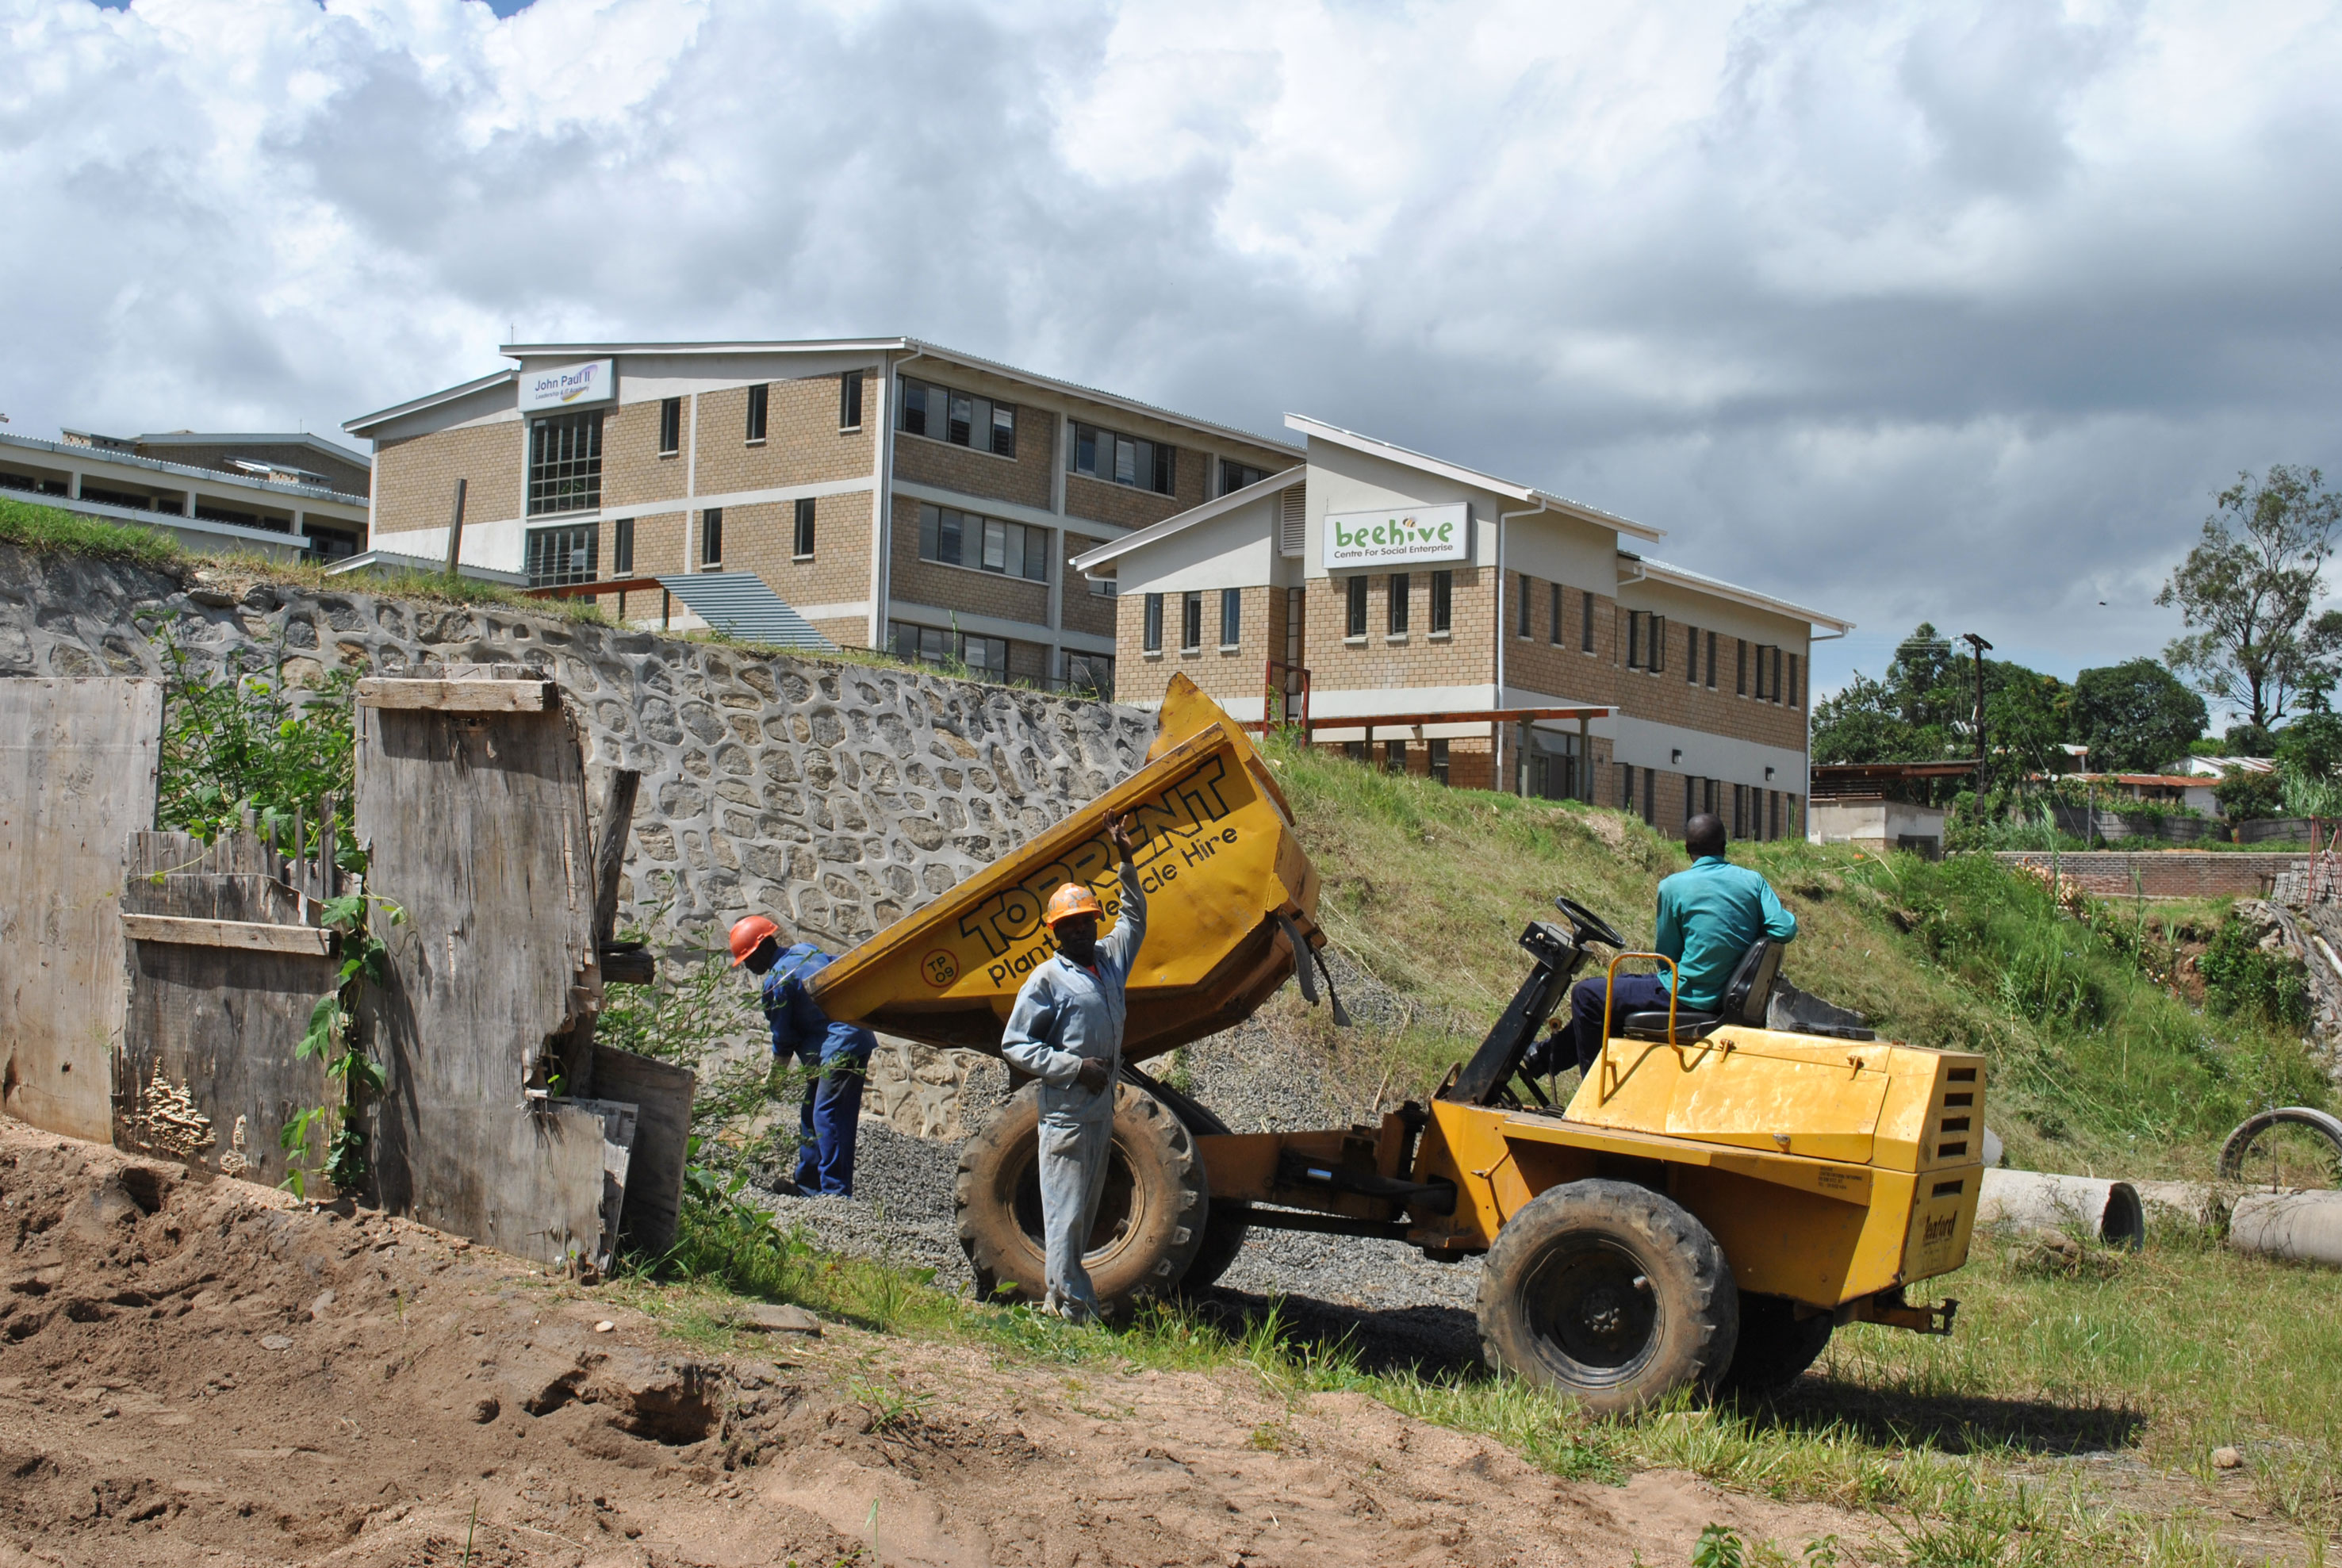 2013 ongoing work on the Beehive campus